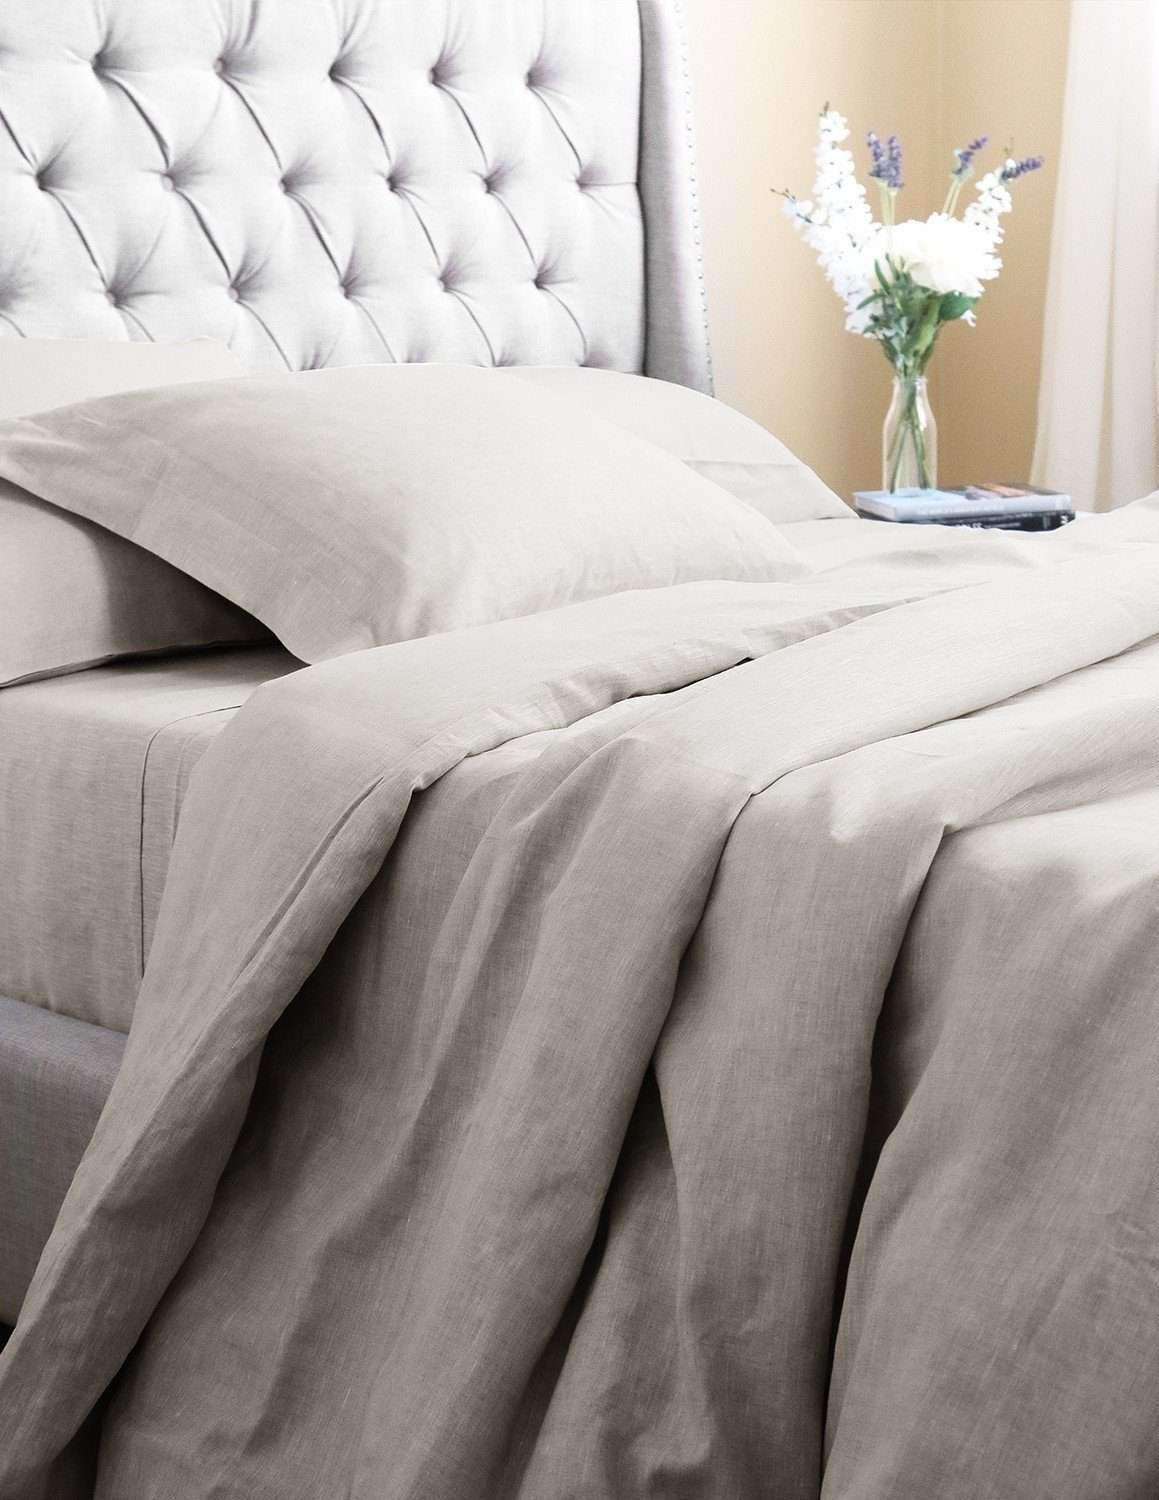 Paola Italian Linen Duvet Cover Shop Luxury Bedding And Bath At Luxor Linens